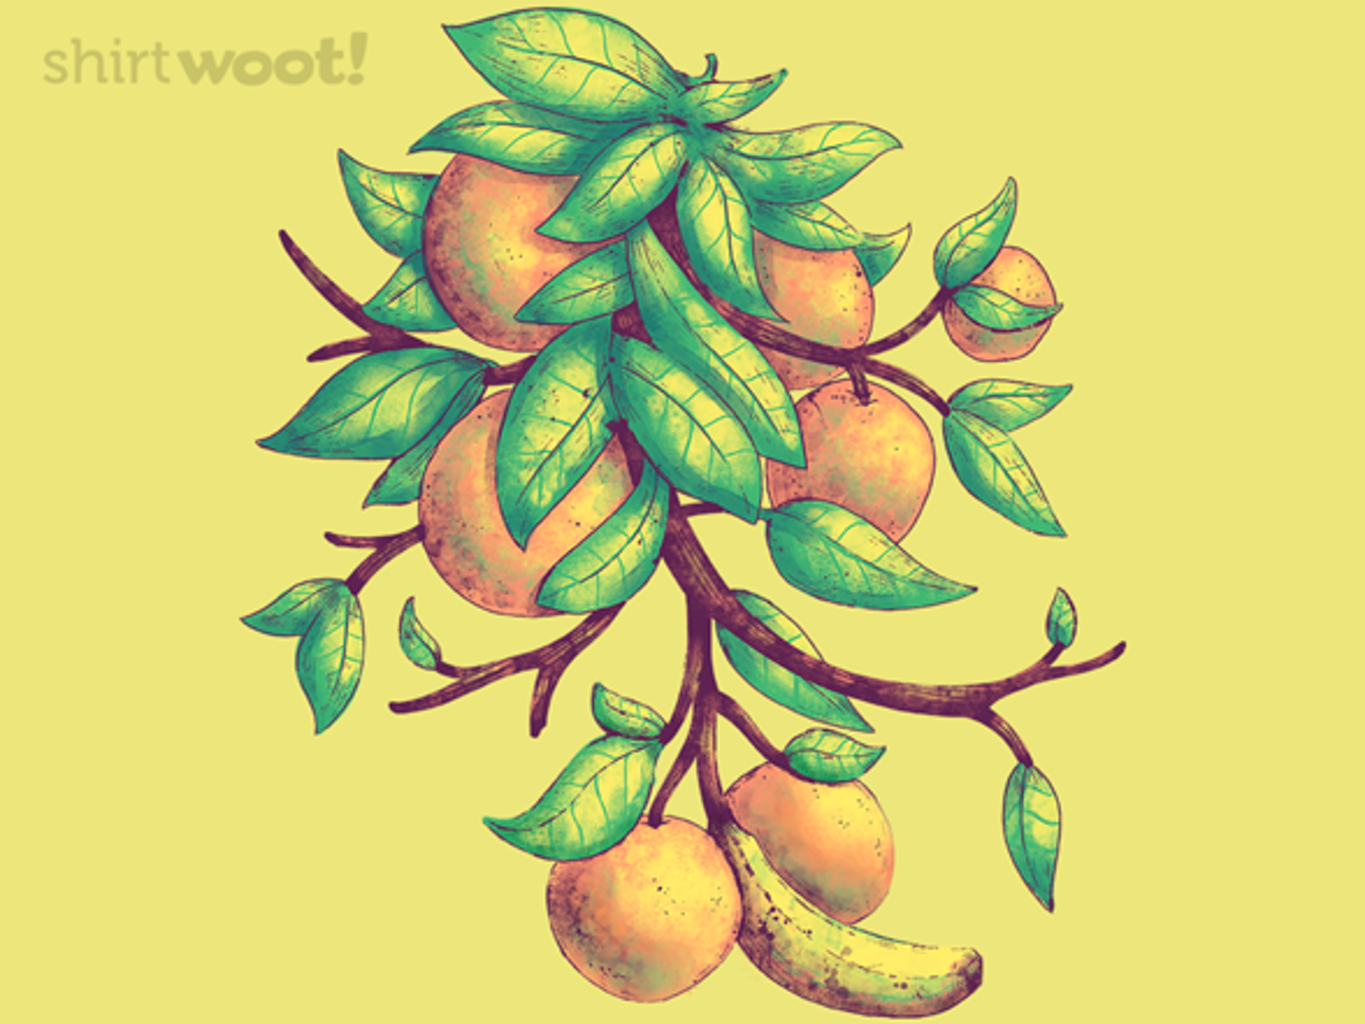 Woot!: Low-Hanging Fruit - $15.00 + Free shipping